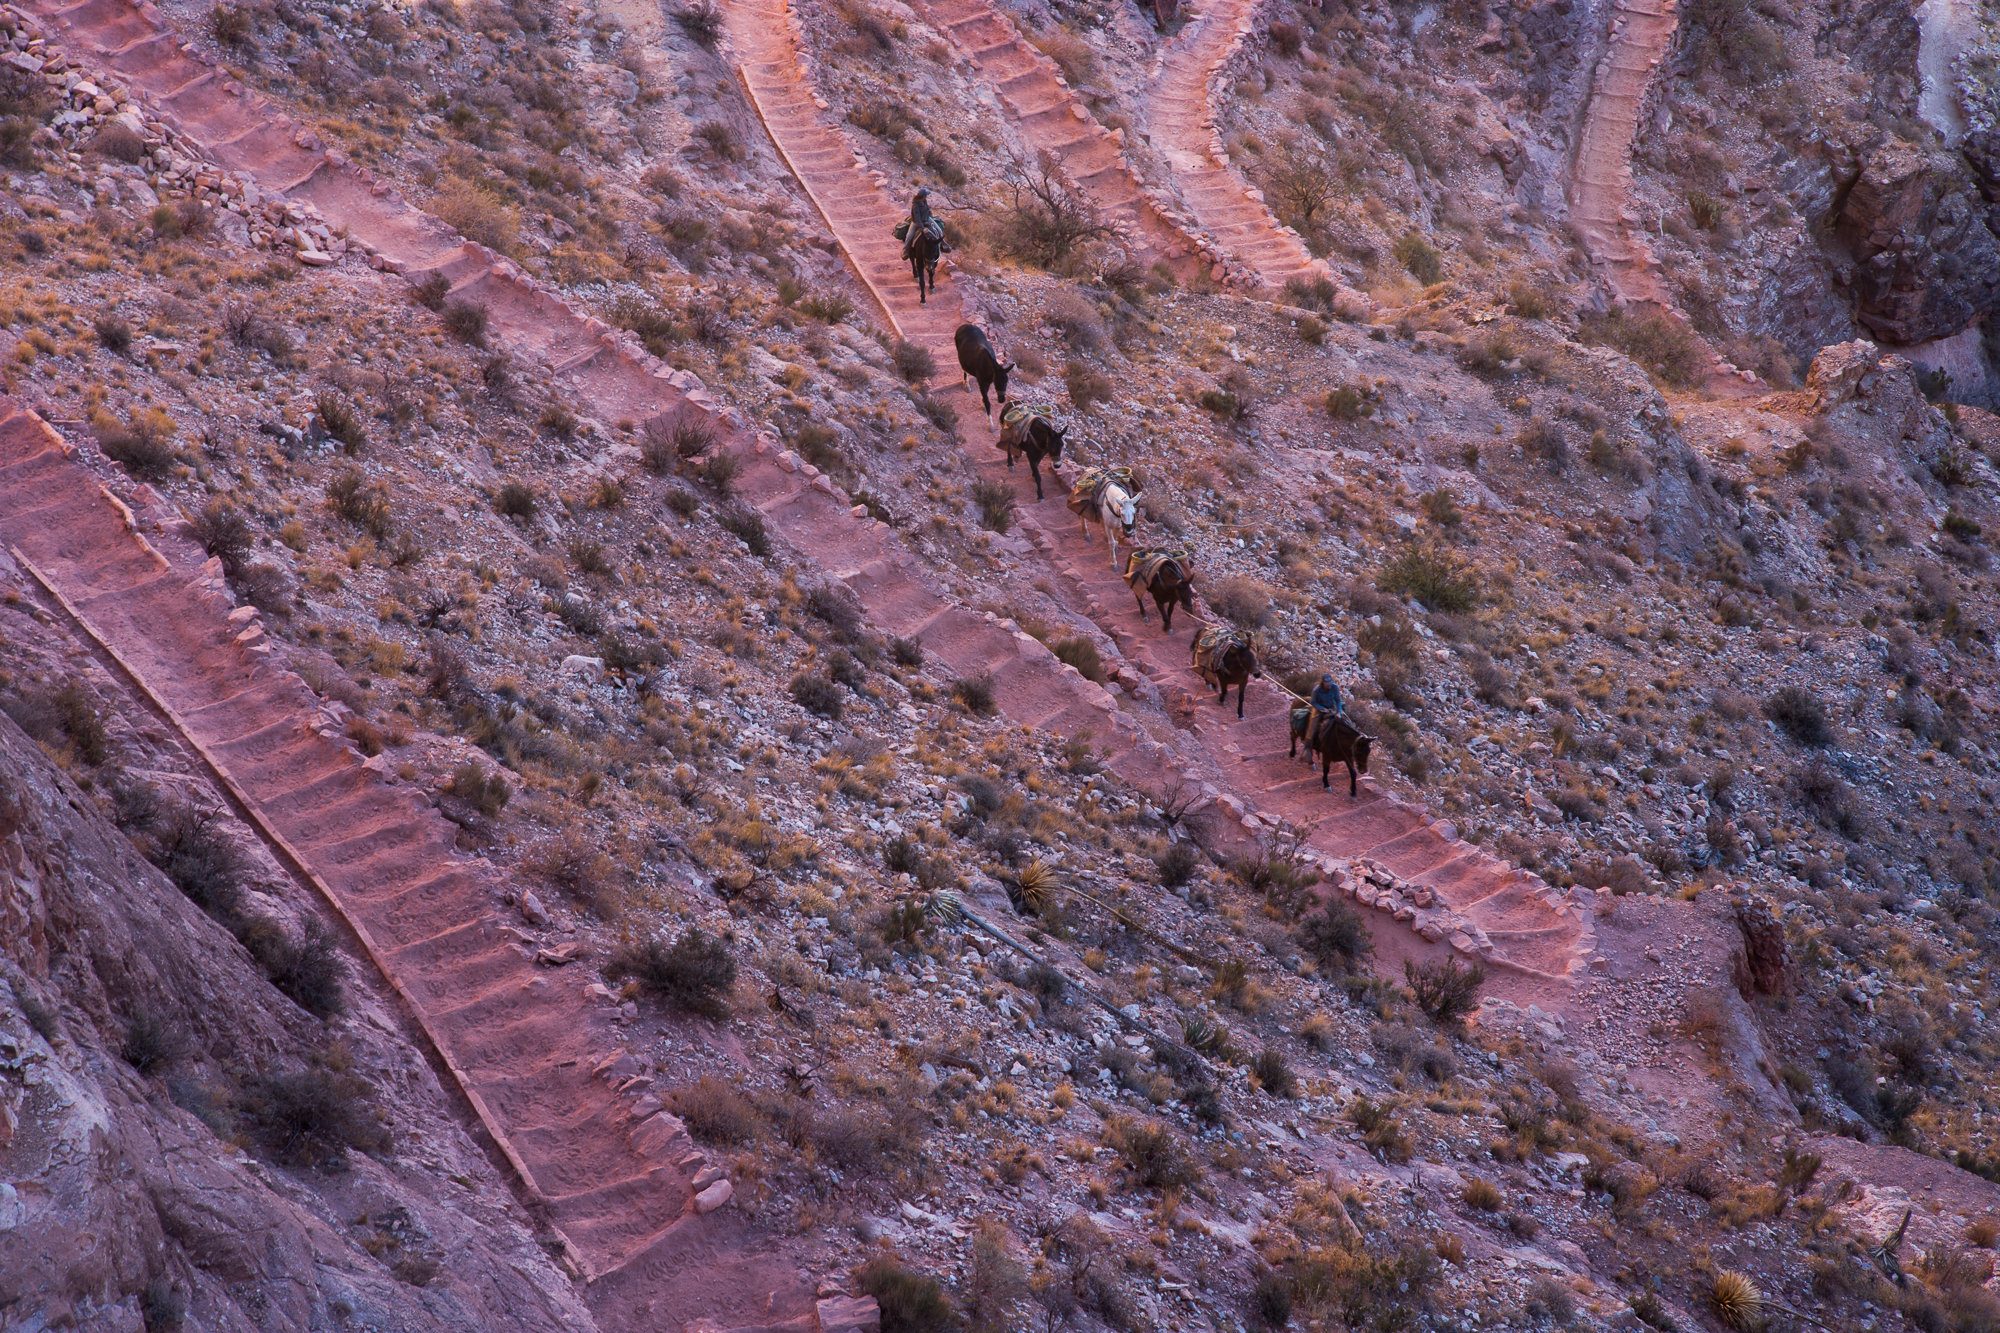 A Mule Team climbing the switchbacks